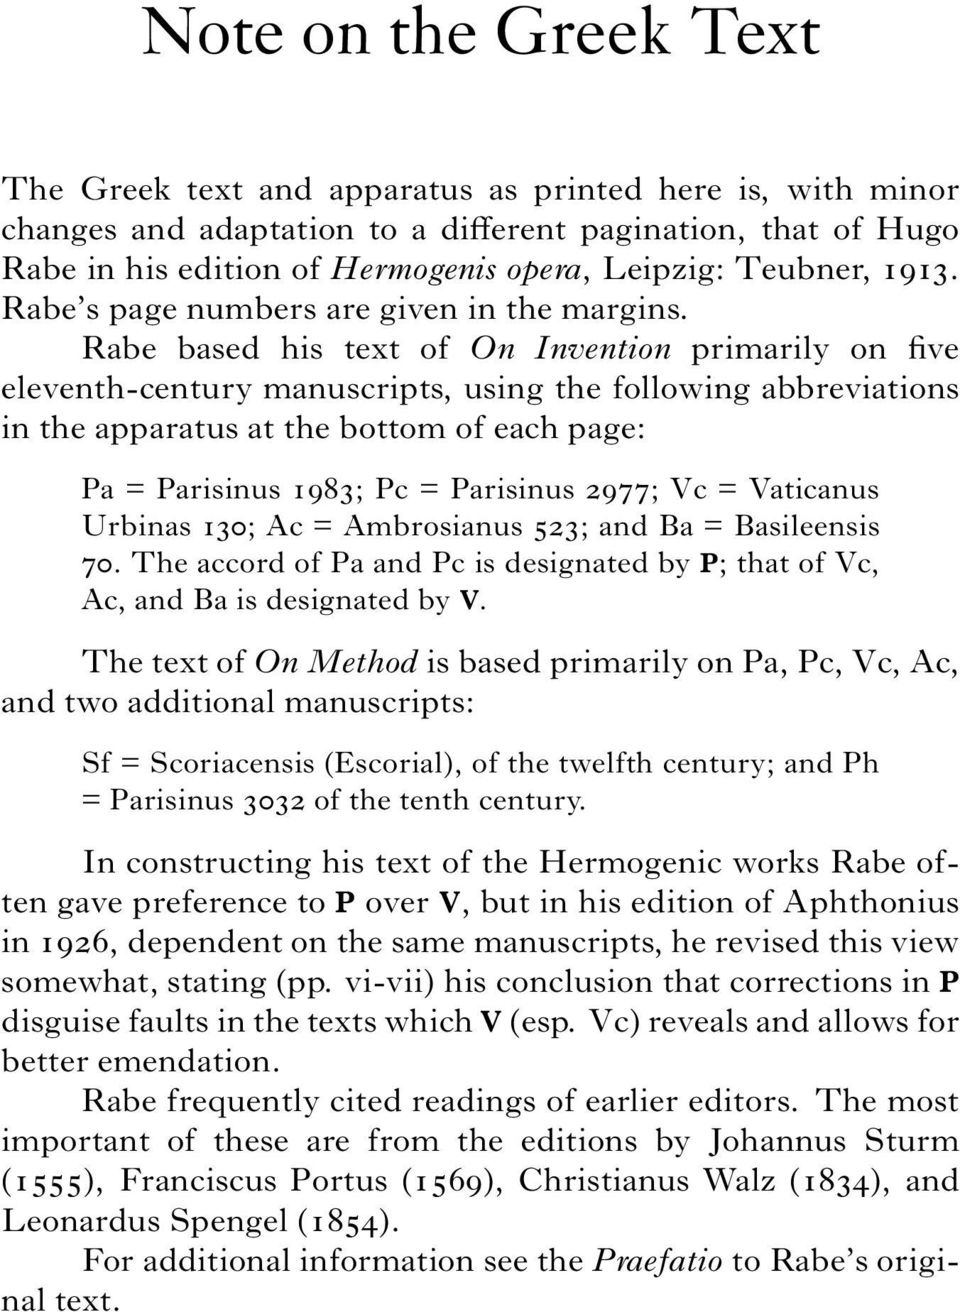 Rabe based his text of On Invention primarily on five eleventh-century manuscripts, using the following abbreviations in the apparatus at the bottom of each page: Pa = Parisinus 1983; Pc = Parisinus